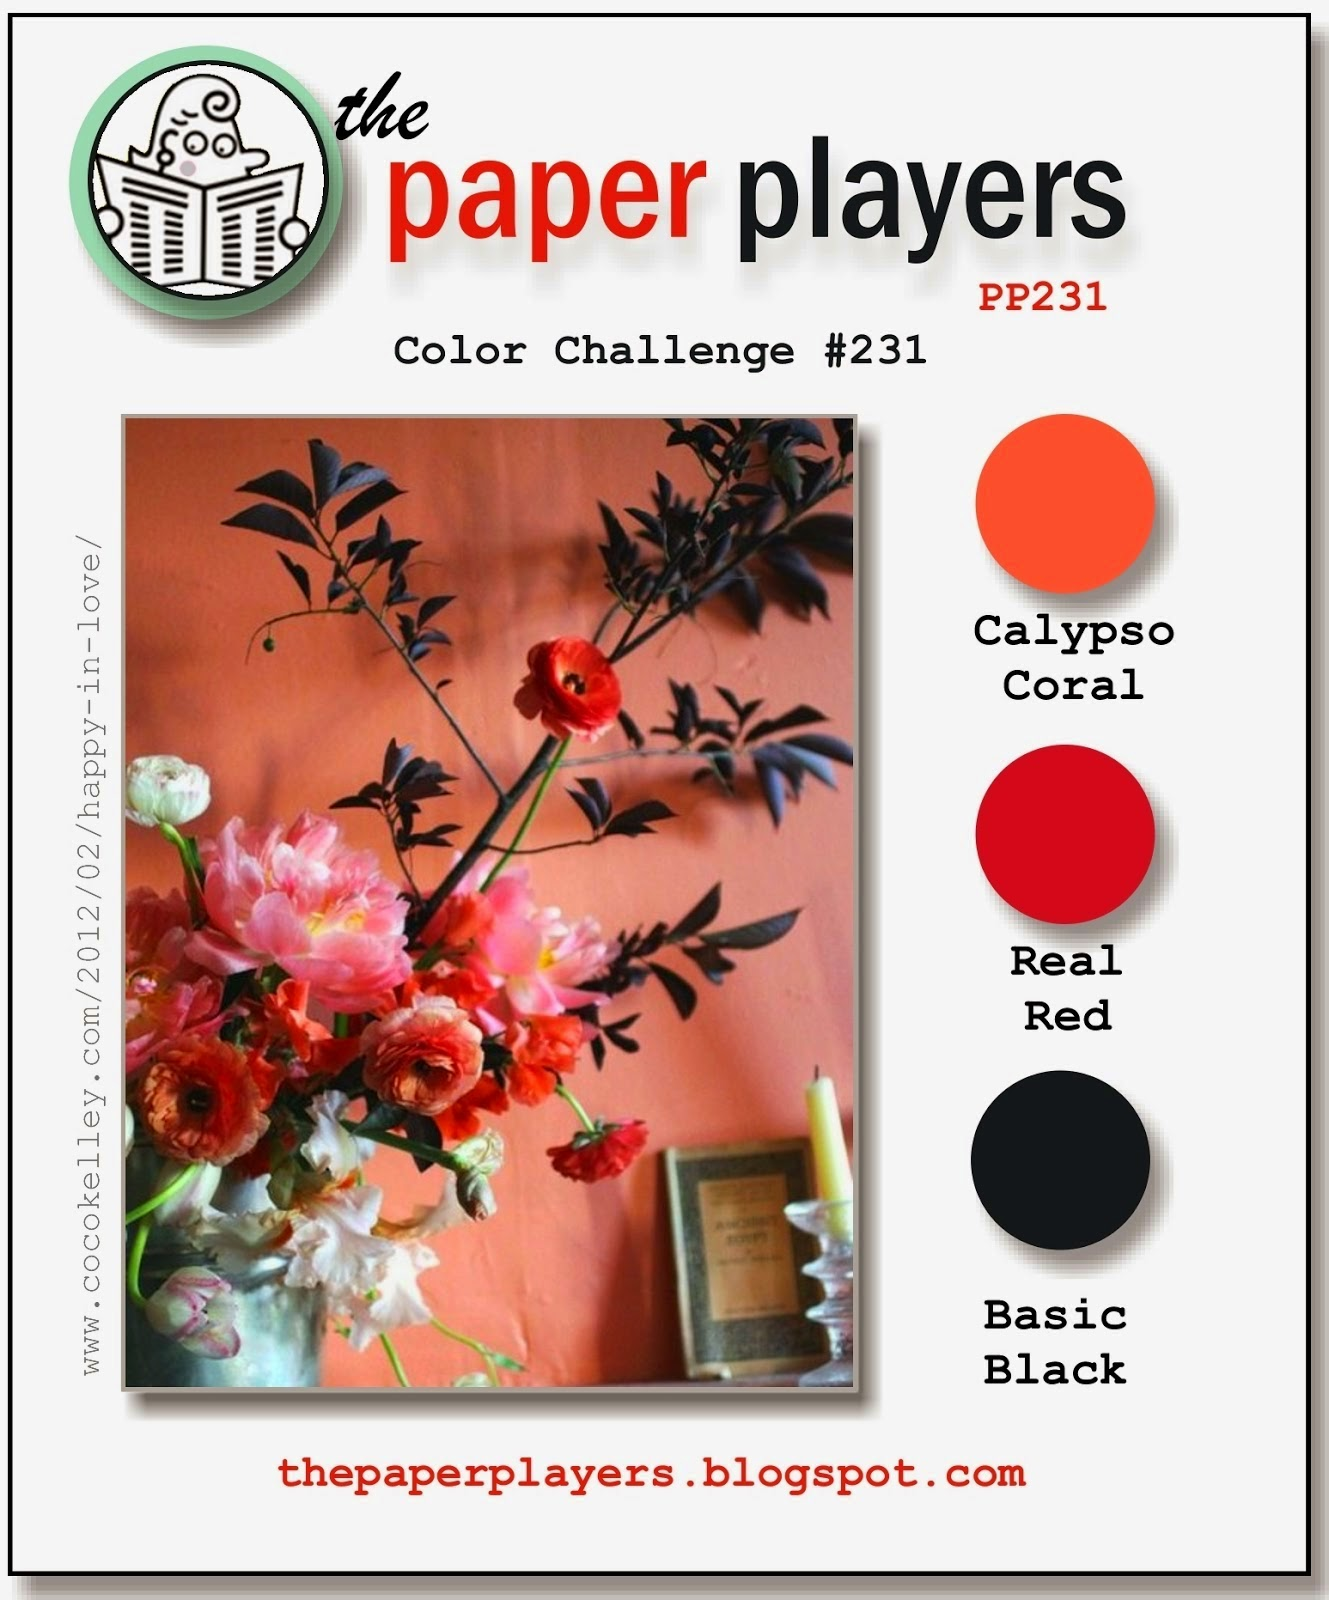 http://thepaperplayers.blogspot.com/2015/02/pp231-color-challenge-from-nance.html